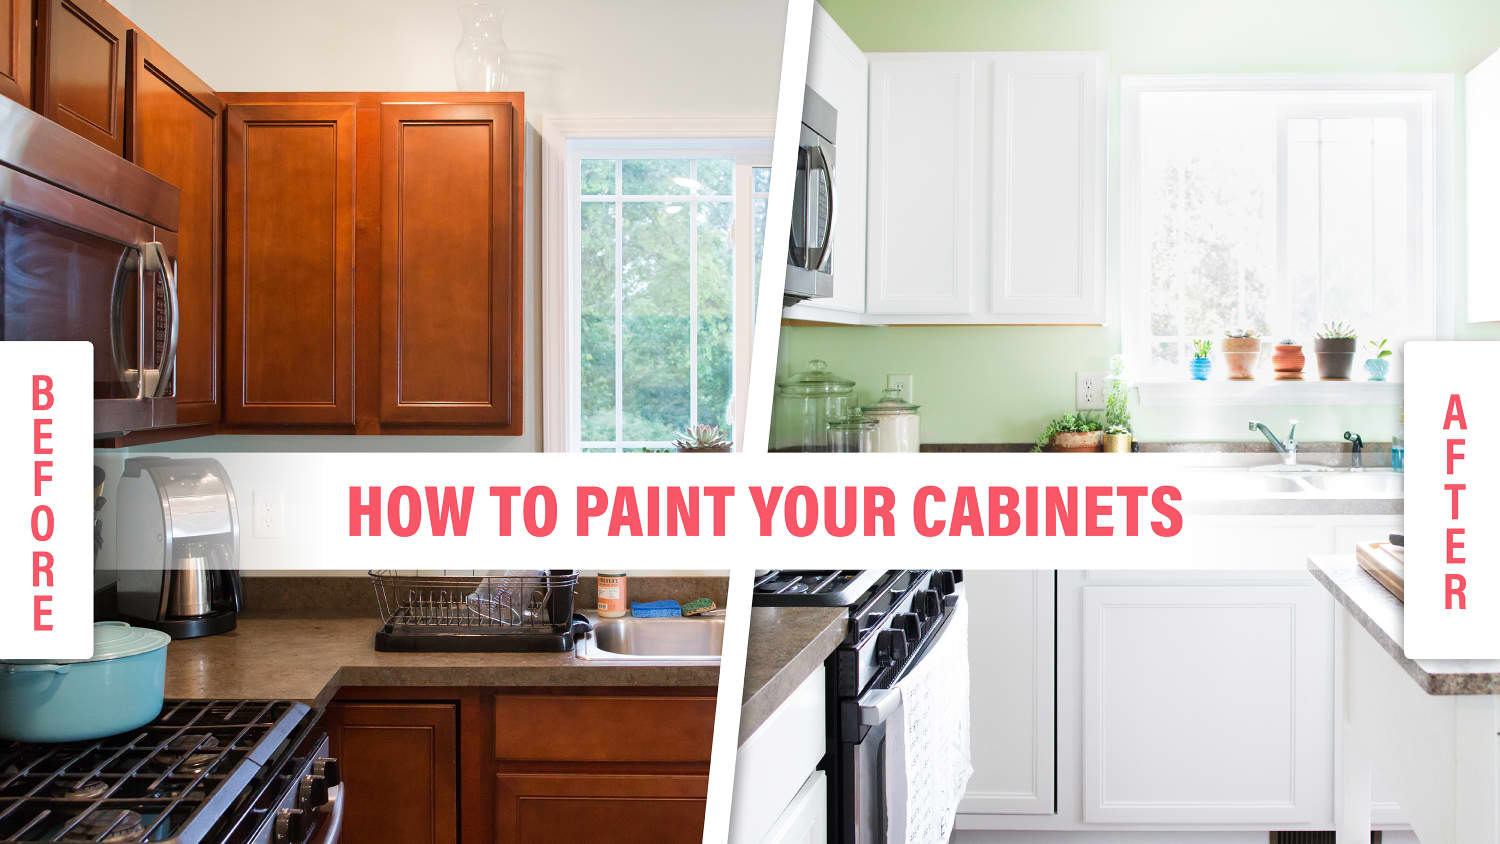 Paint The Cabinets